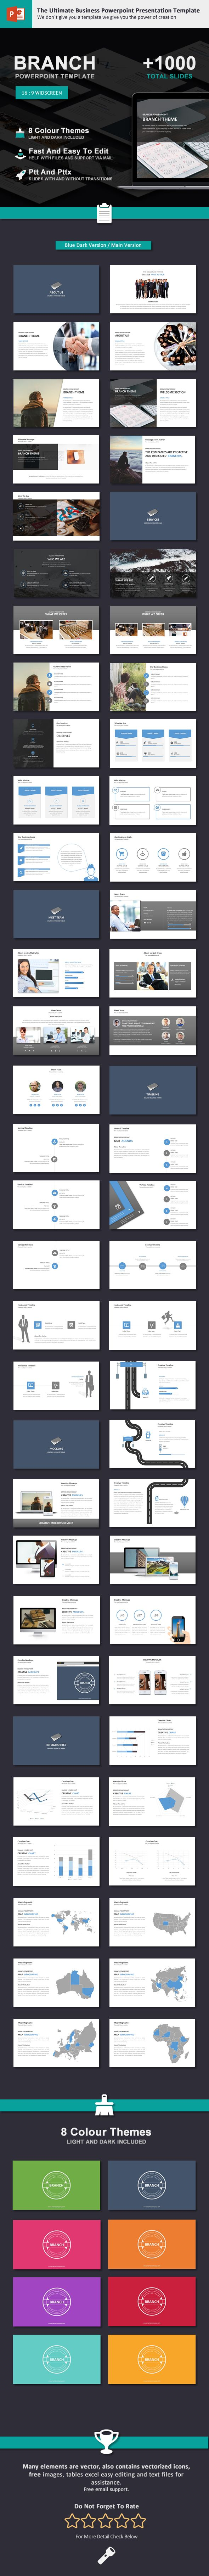 Branch Business Theme Powerpoint Template. Download here: http://graphicriver.net/item/branch-business-theme-powerpoint/15714543?ref=ksioks